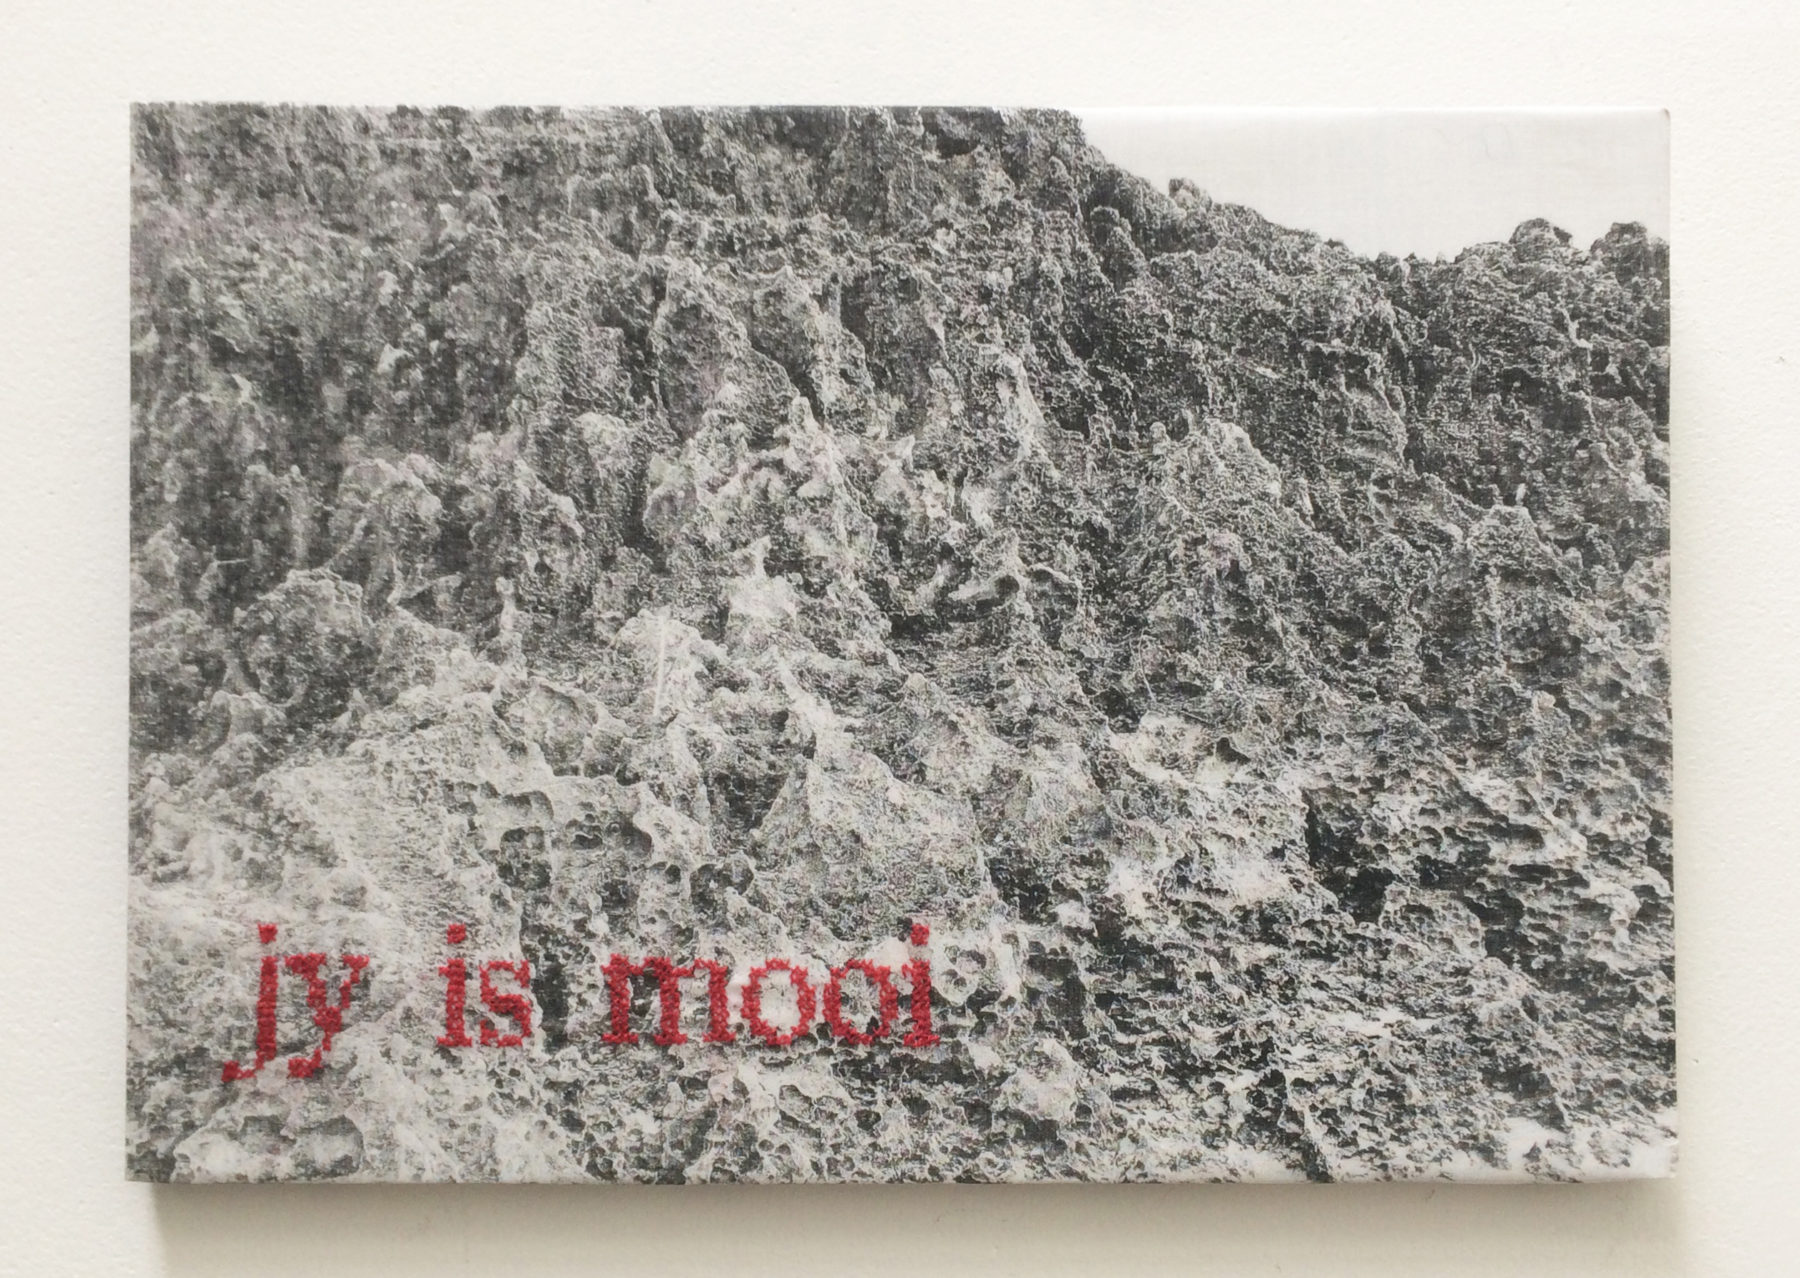 'jy is mooi' - (South Africa)- silkscreen on canvas - text embroidered by hand - 25 x 35 cm - 2014